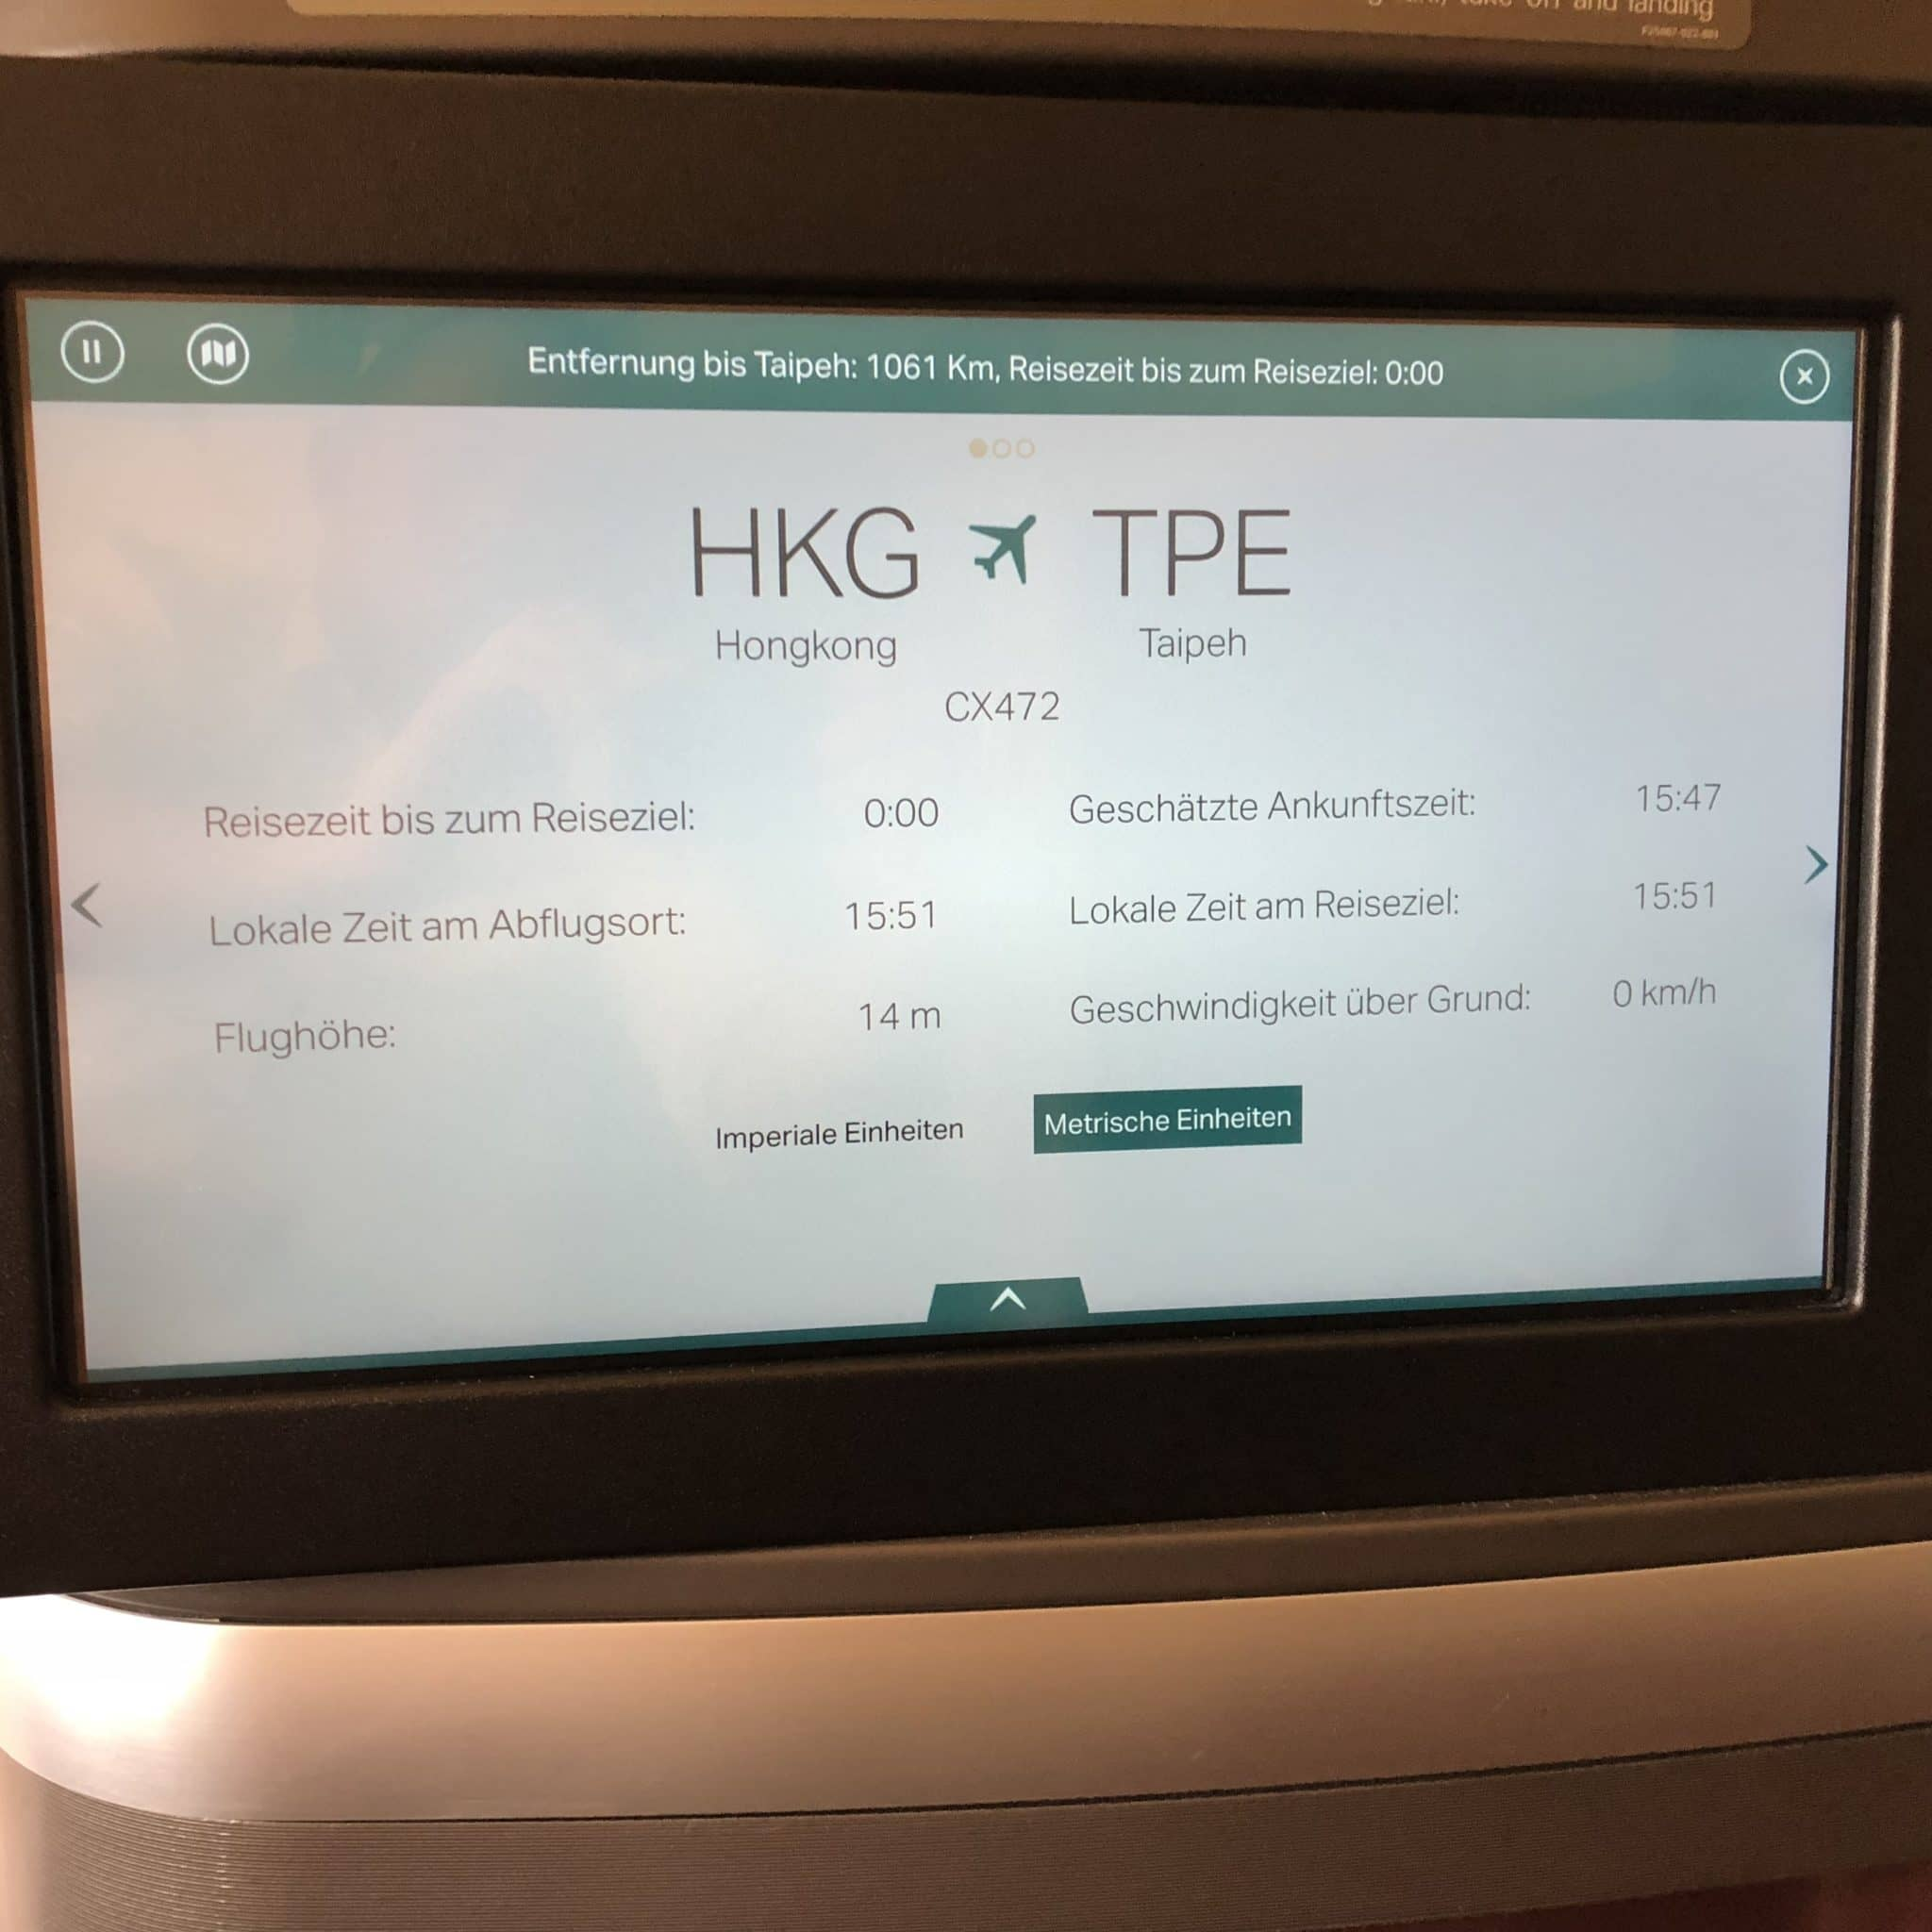 Cathay Pacific First Class Boeing 777-300 Routeninformation großer Bildschirm